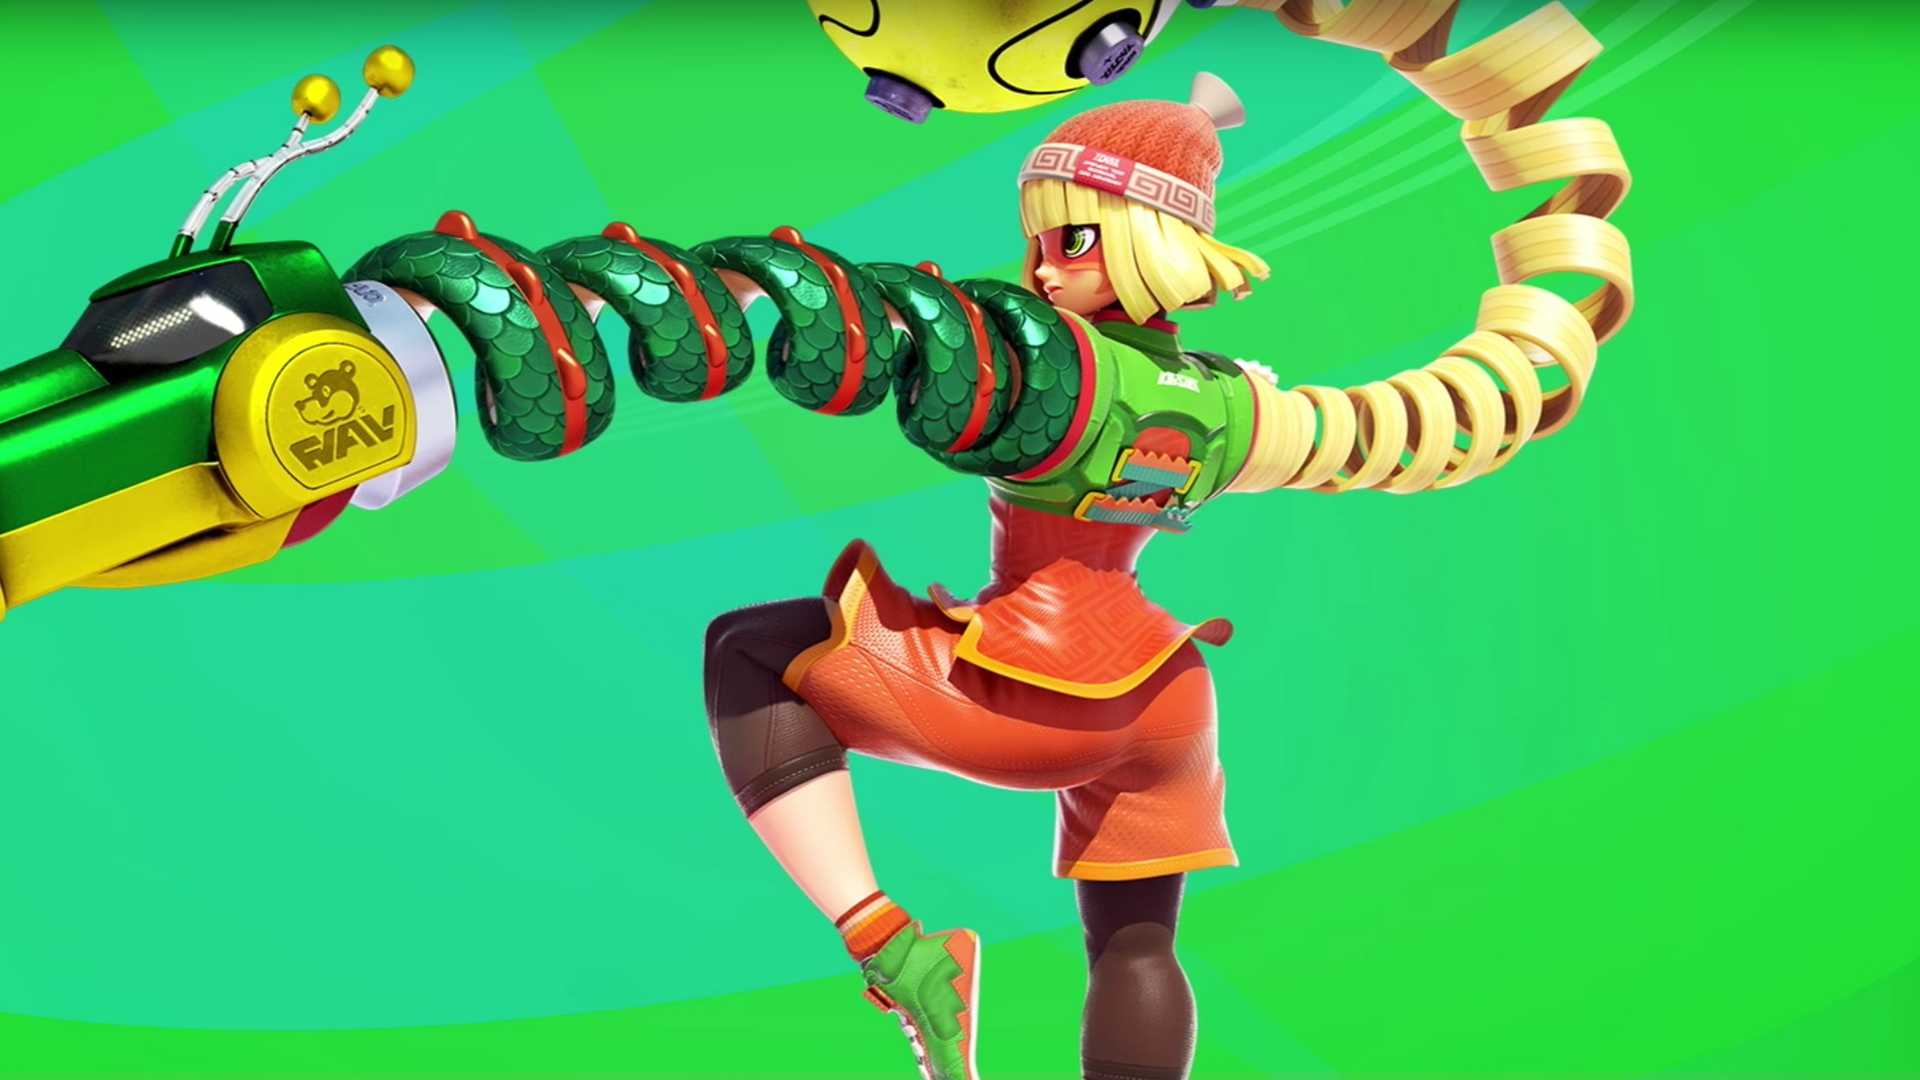 min-min-arms-video-game-342(1)